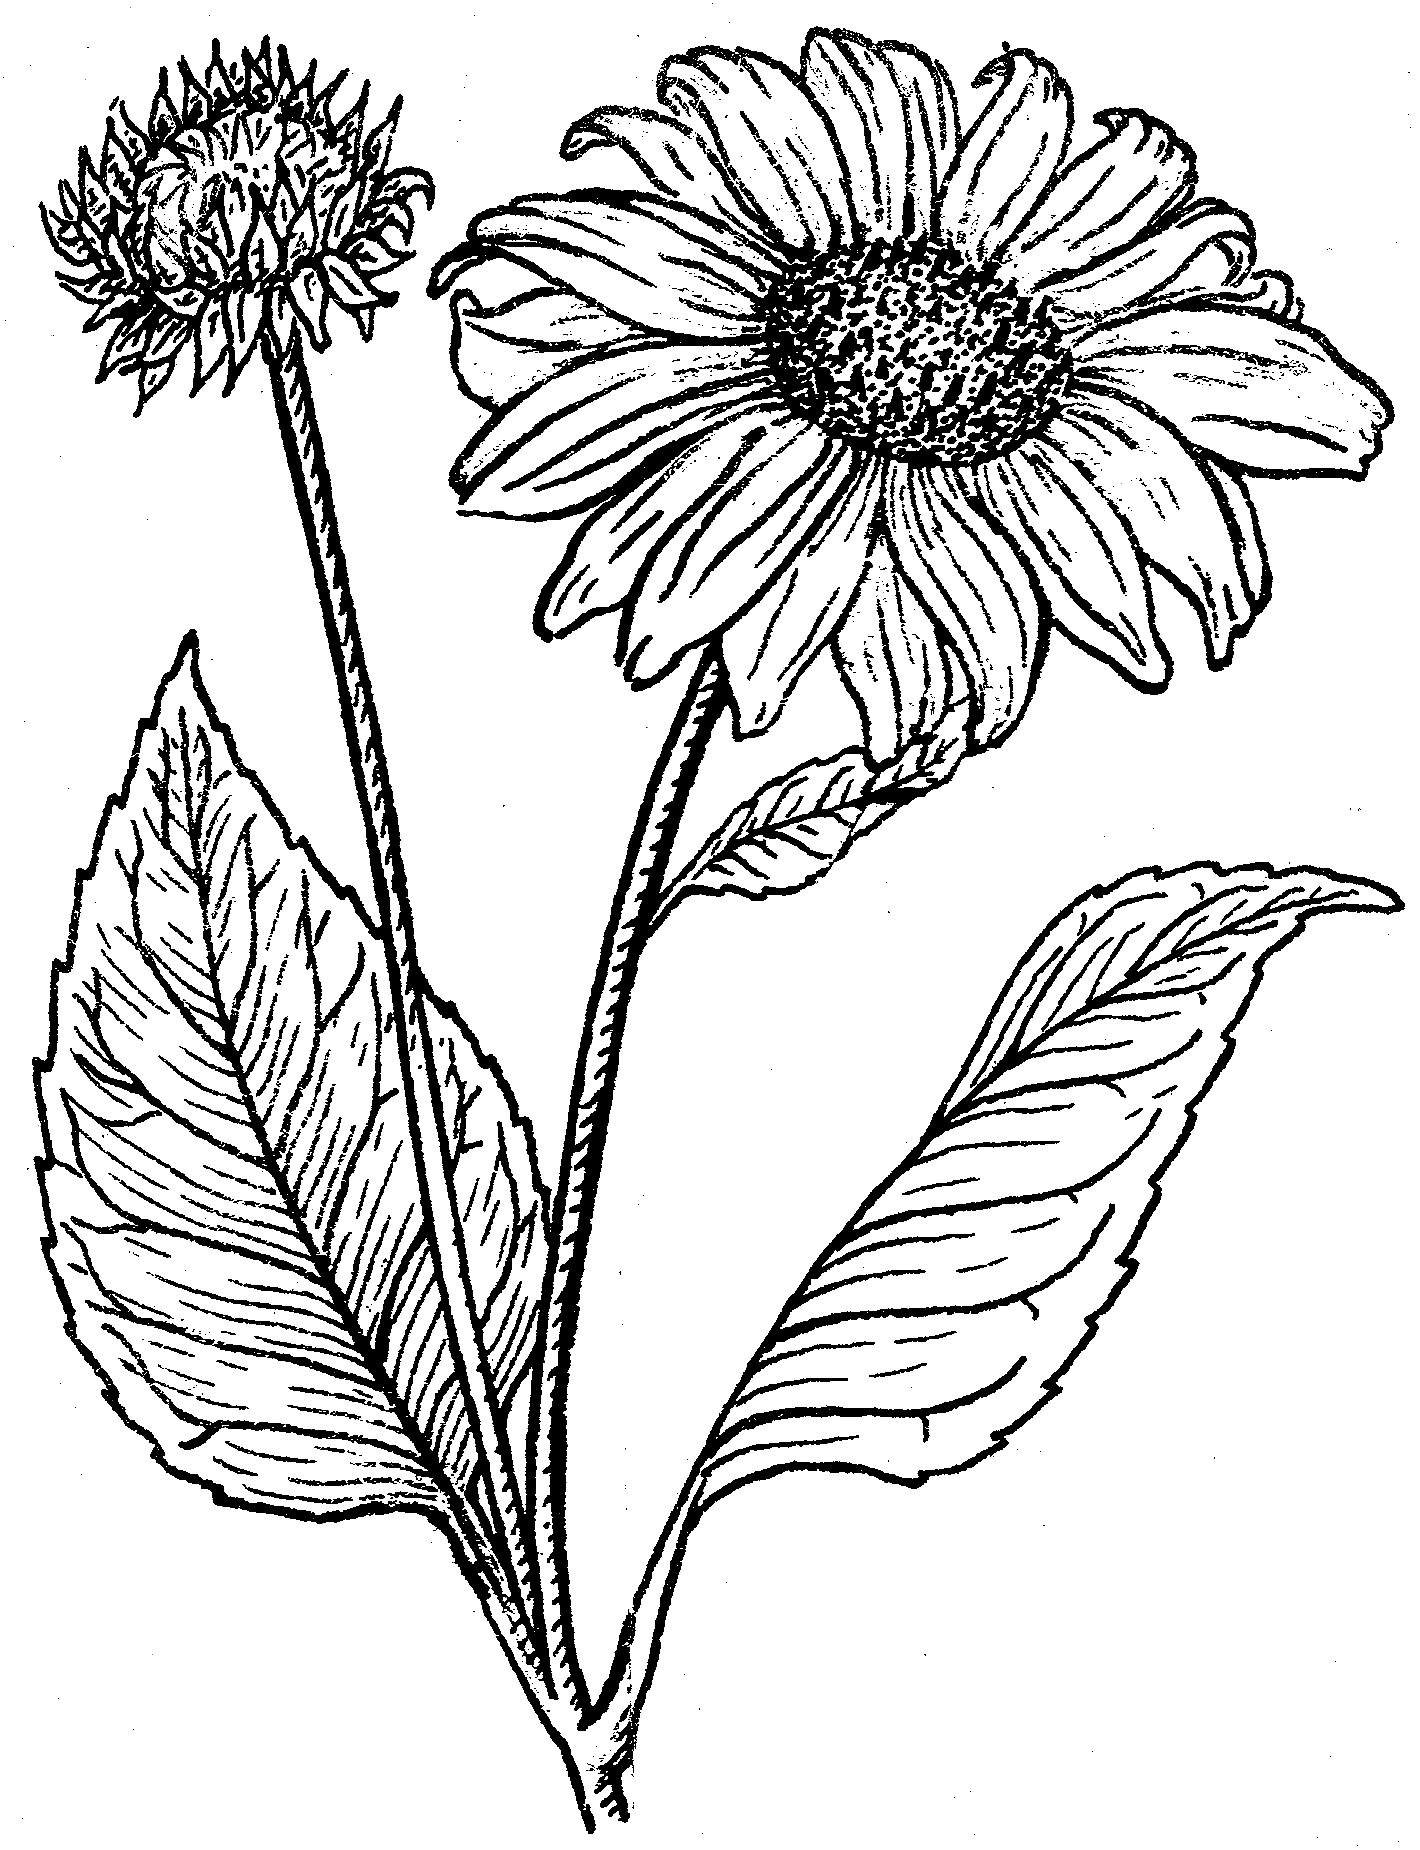 Line Drawing Sunflower Tattoo : Line drawing sunflower imgkid the image kid